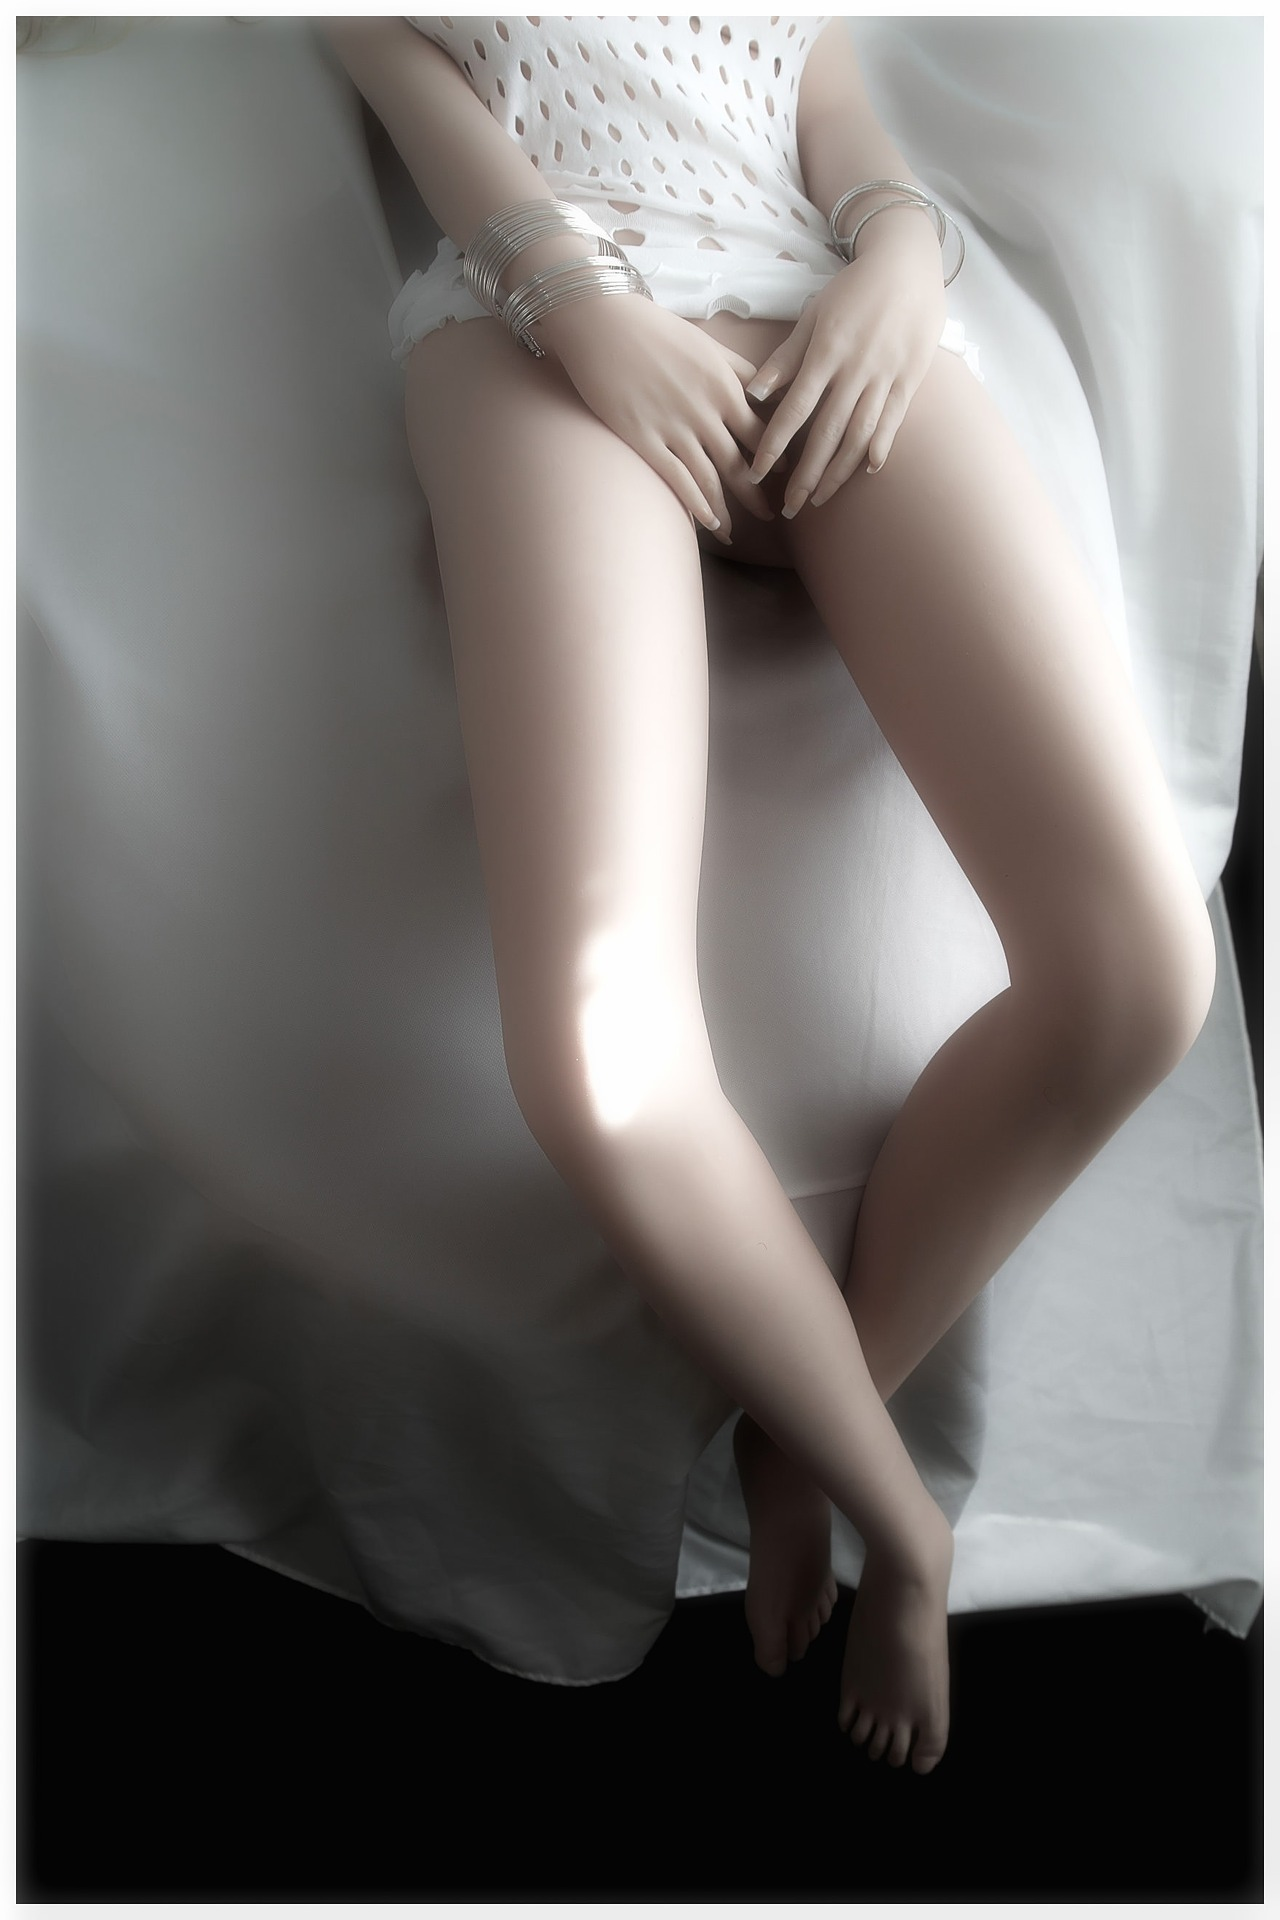 Eleven year old girl naked